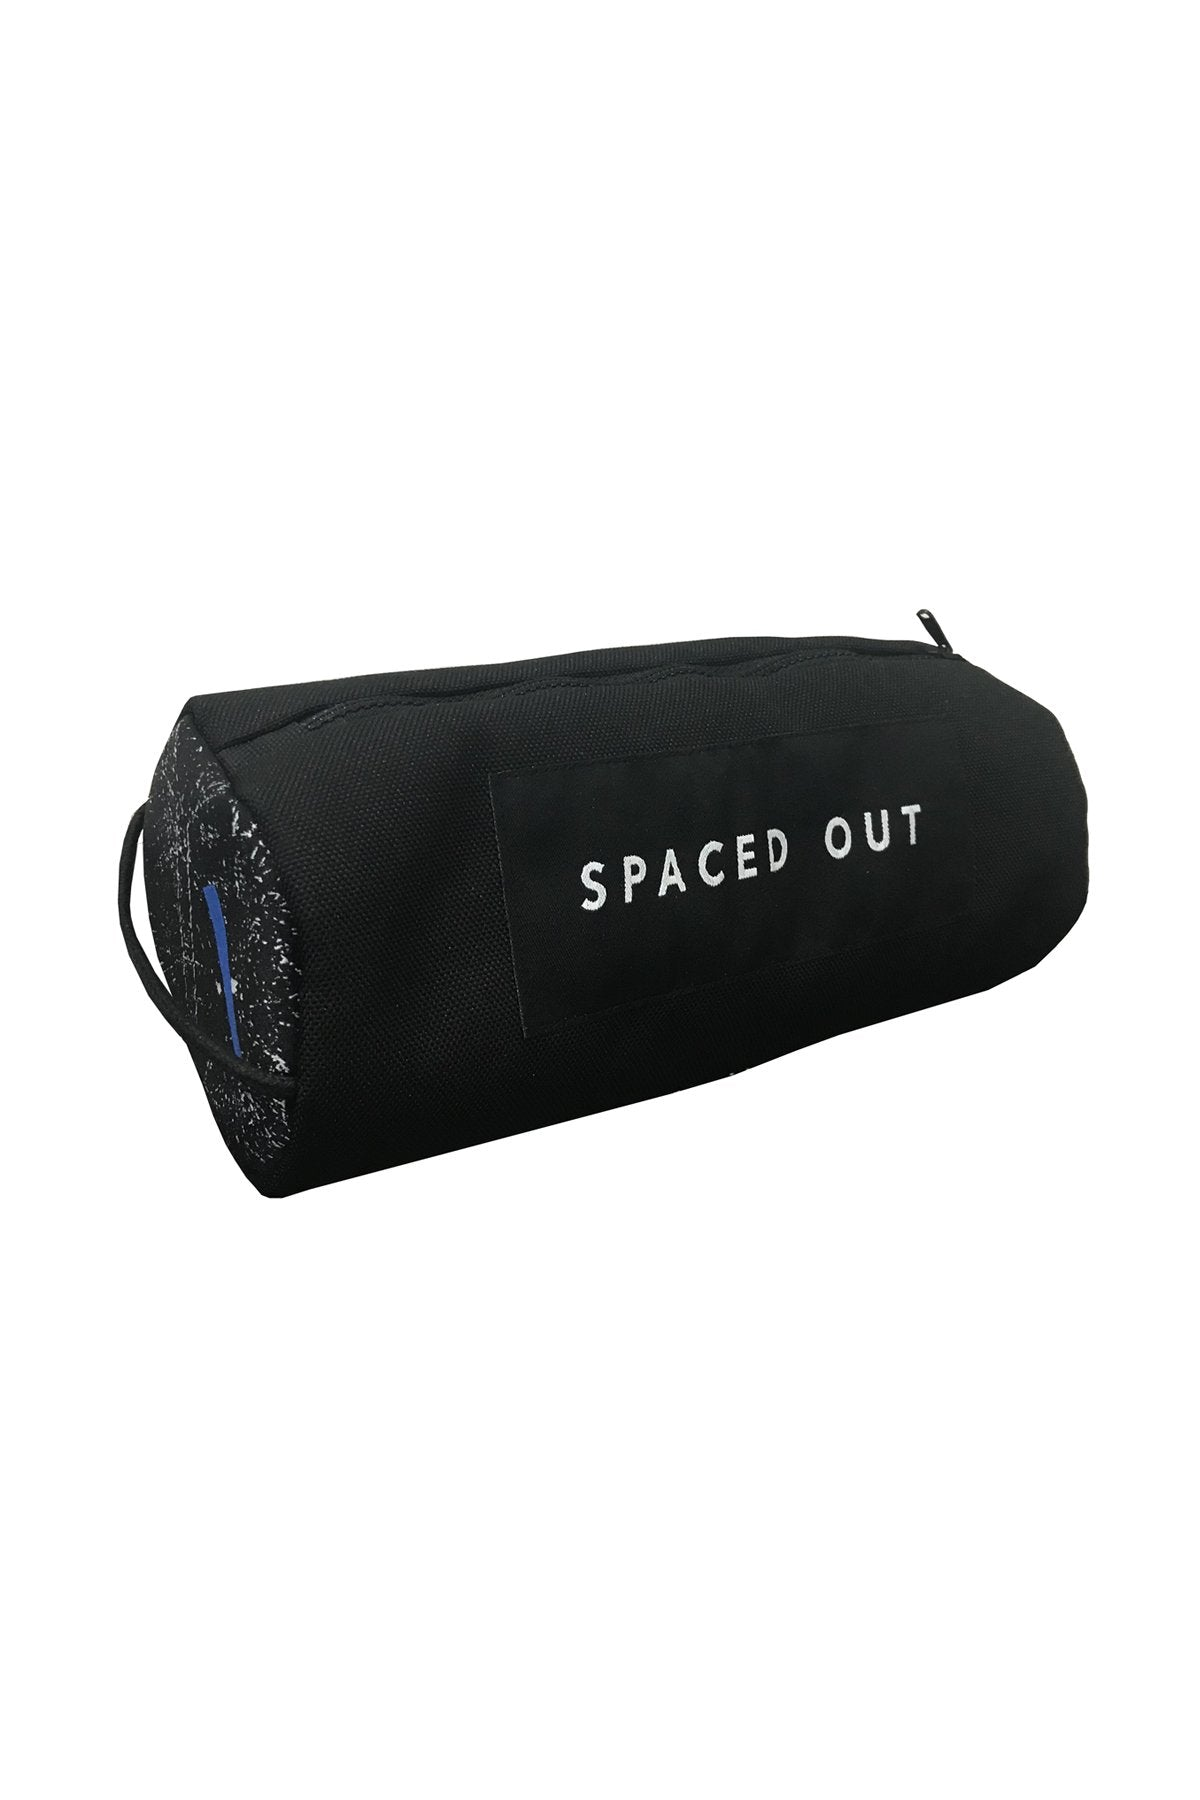 'Spaced Out' Pouch